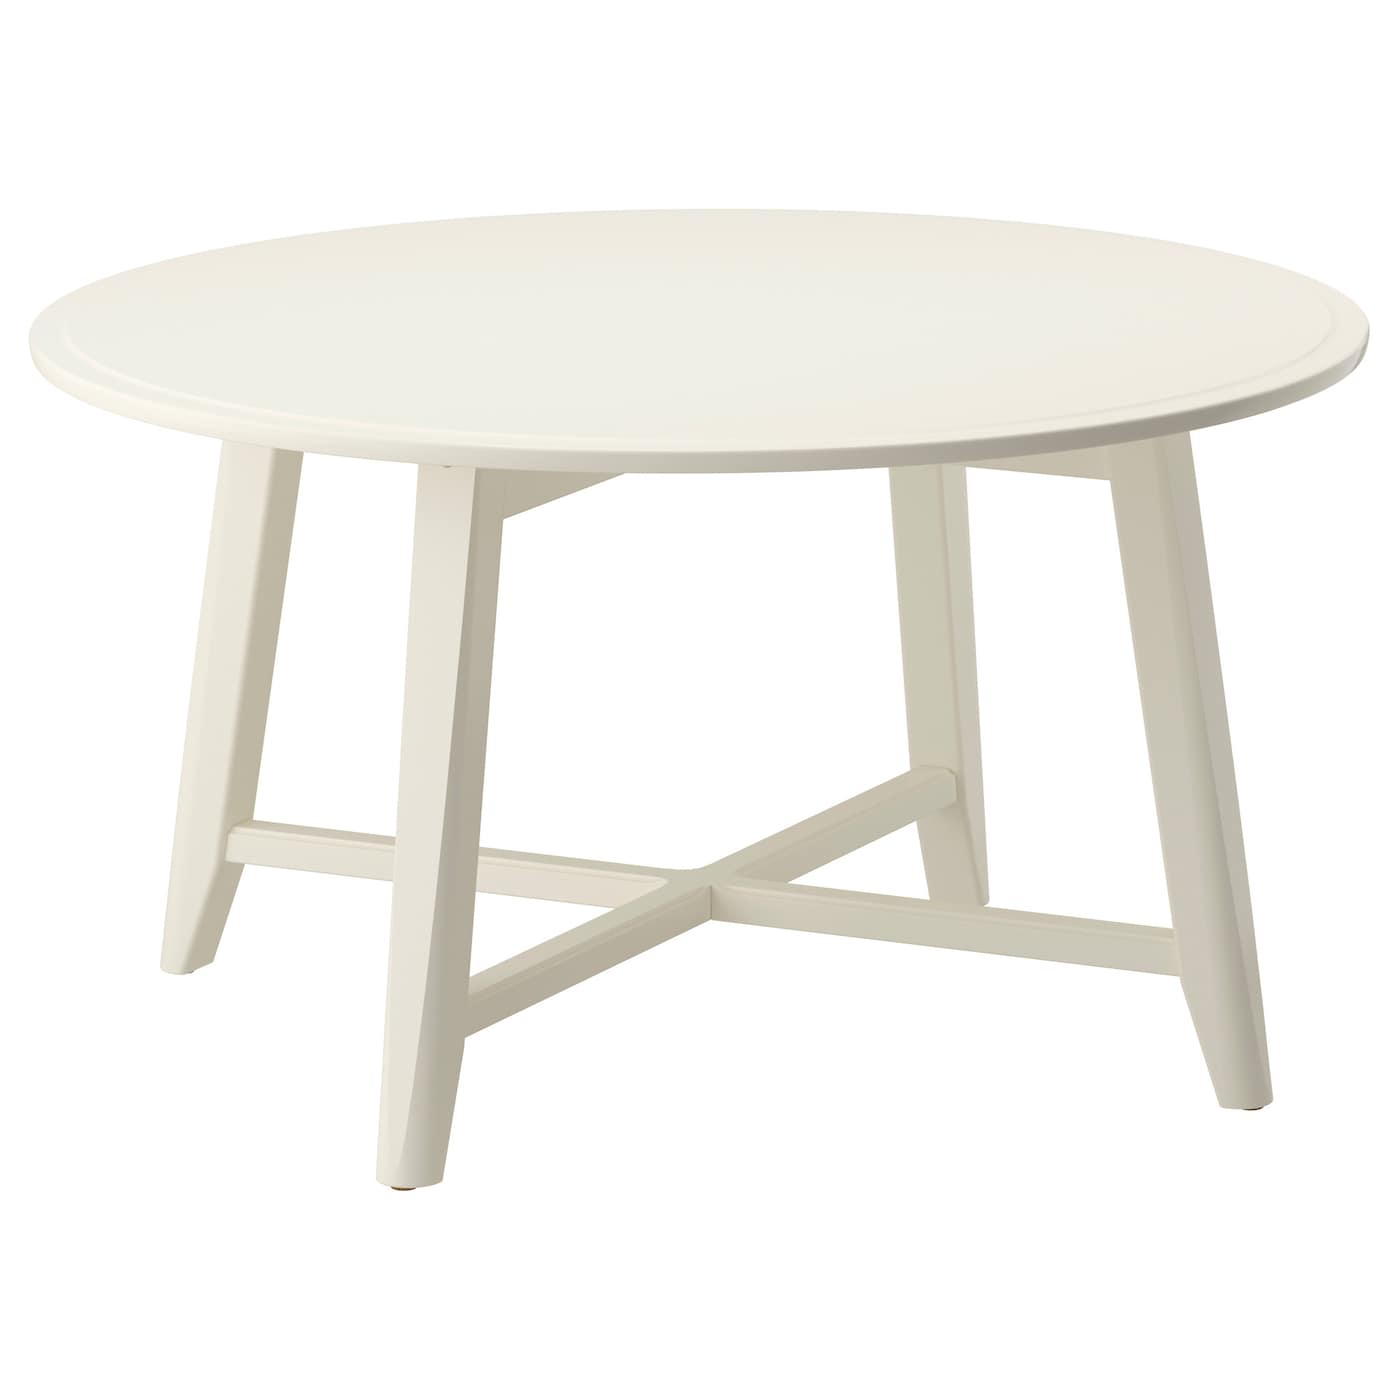 KRAGSTA Coffee table White 90 cm IKEA